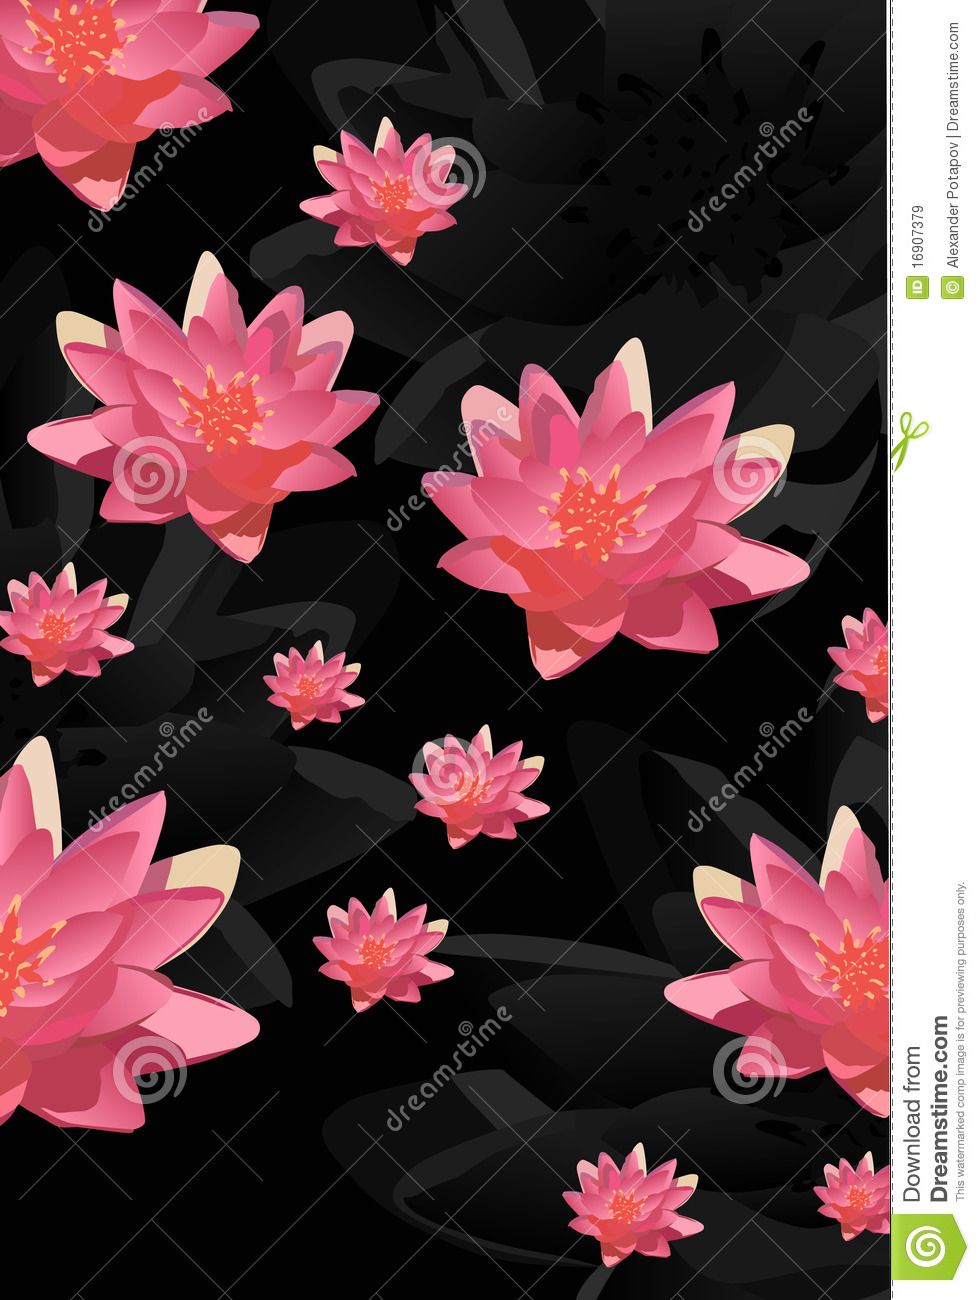 Pink lotus flowers background royalty free stock images image background black flowers illustration lotus dhlflorist Image collections